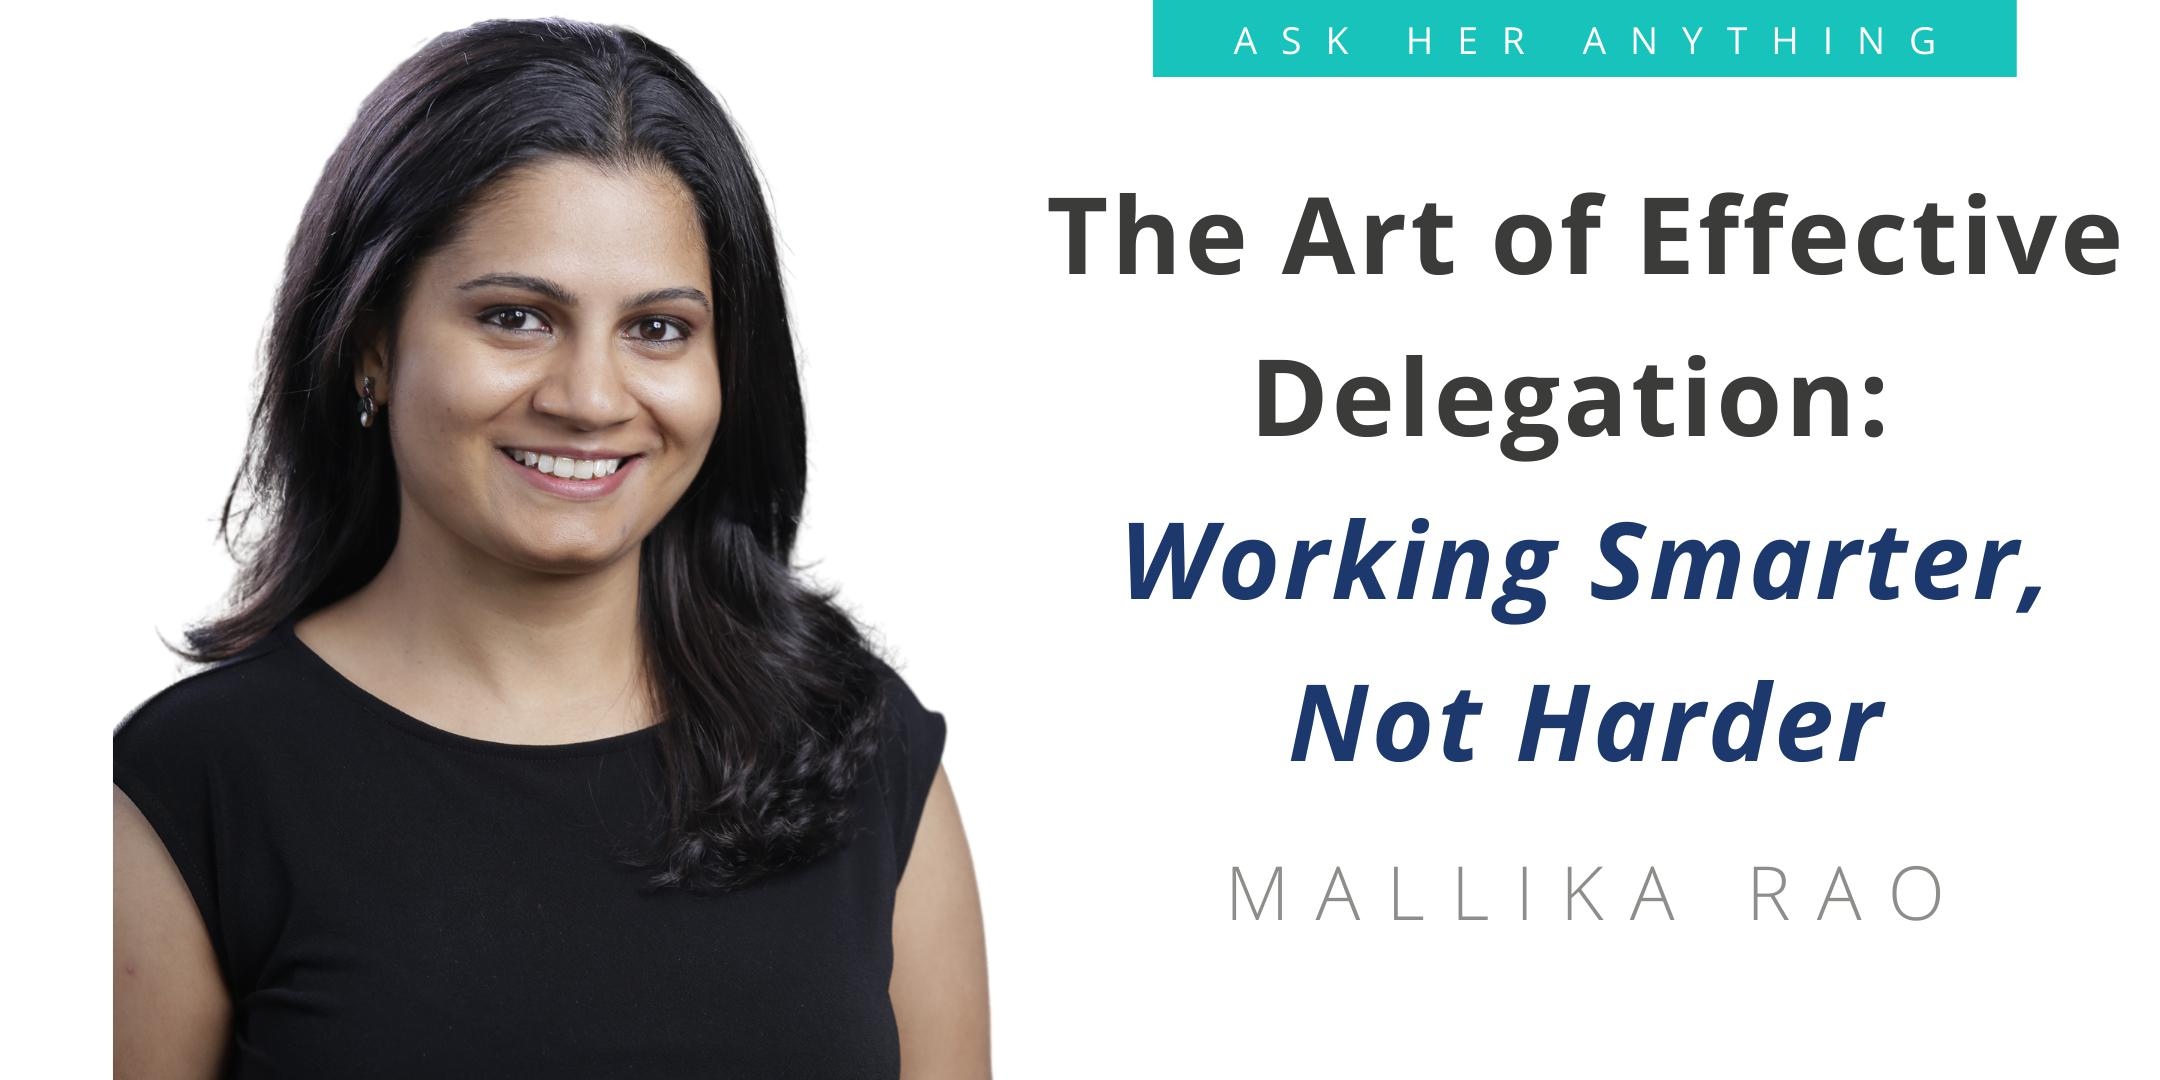 The Art of Effective Delegation: Working Smarter, Not Harder